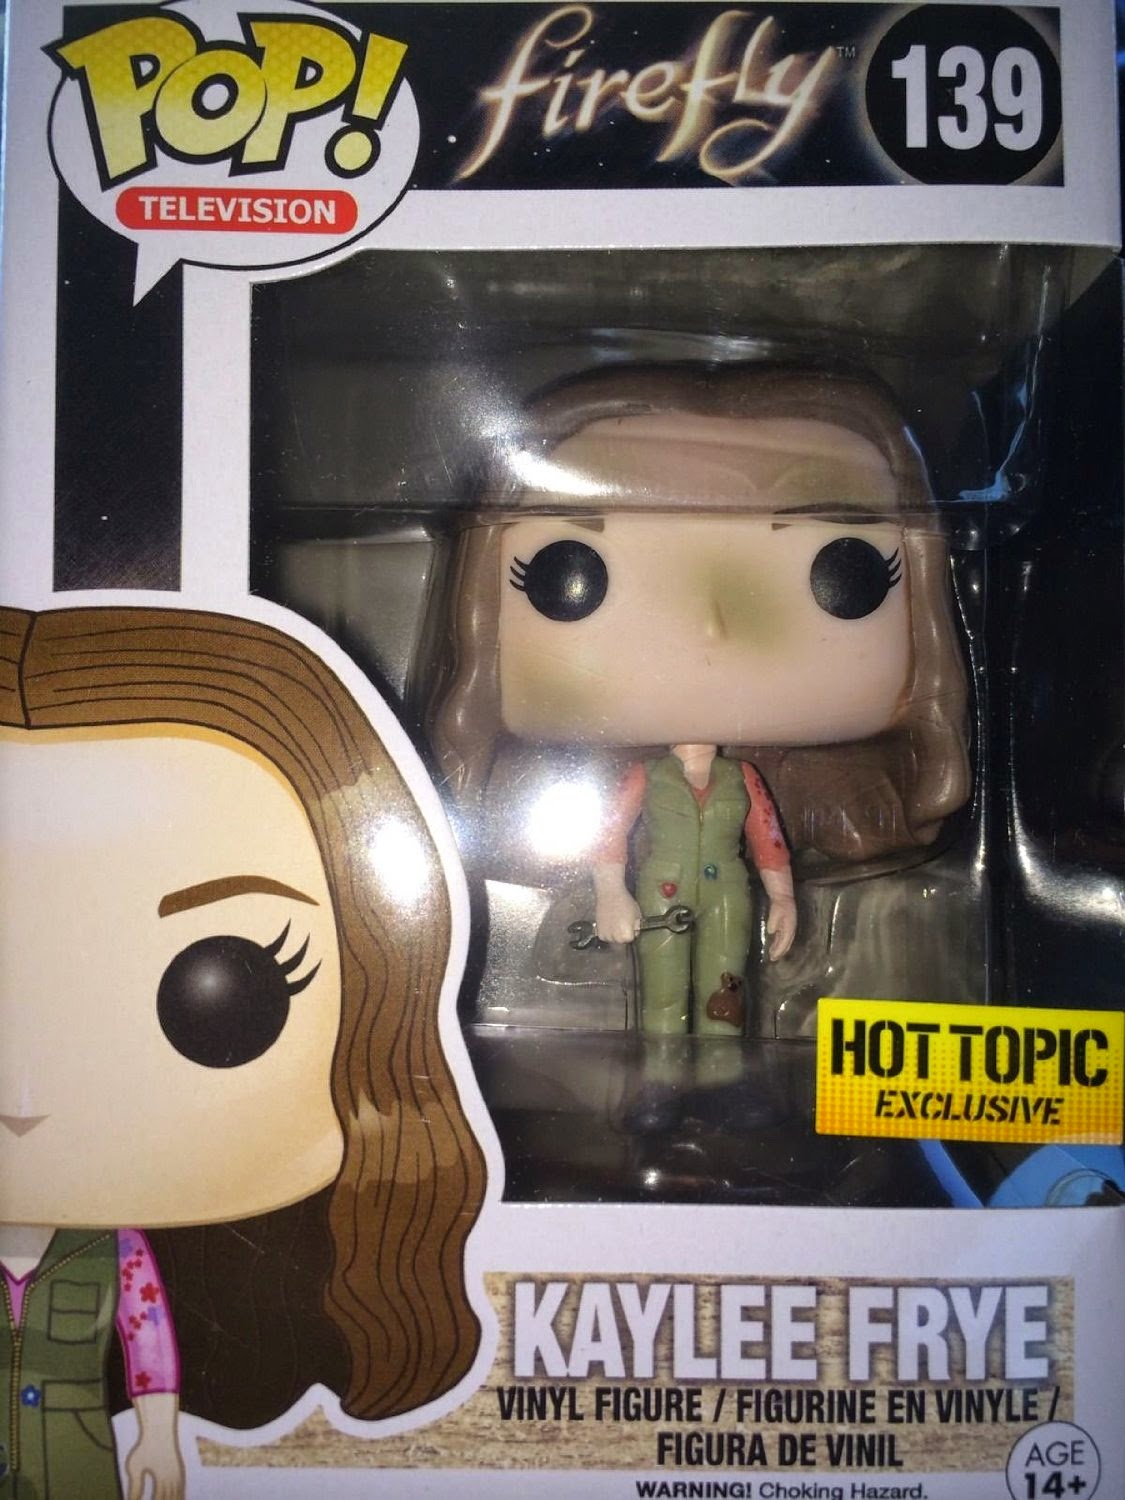 Kaylee Frye exclusiva Hot Topic